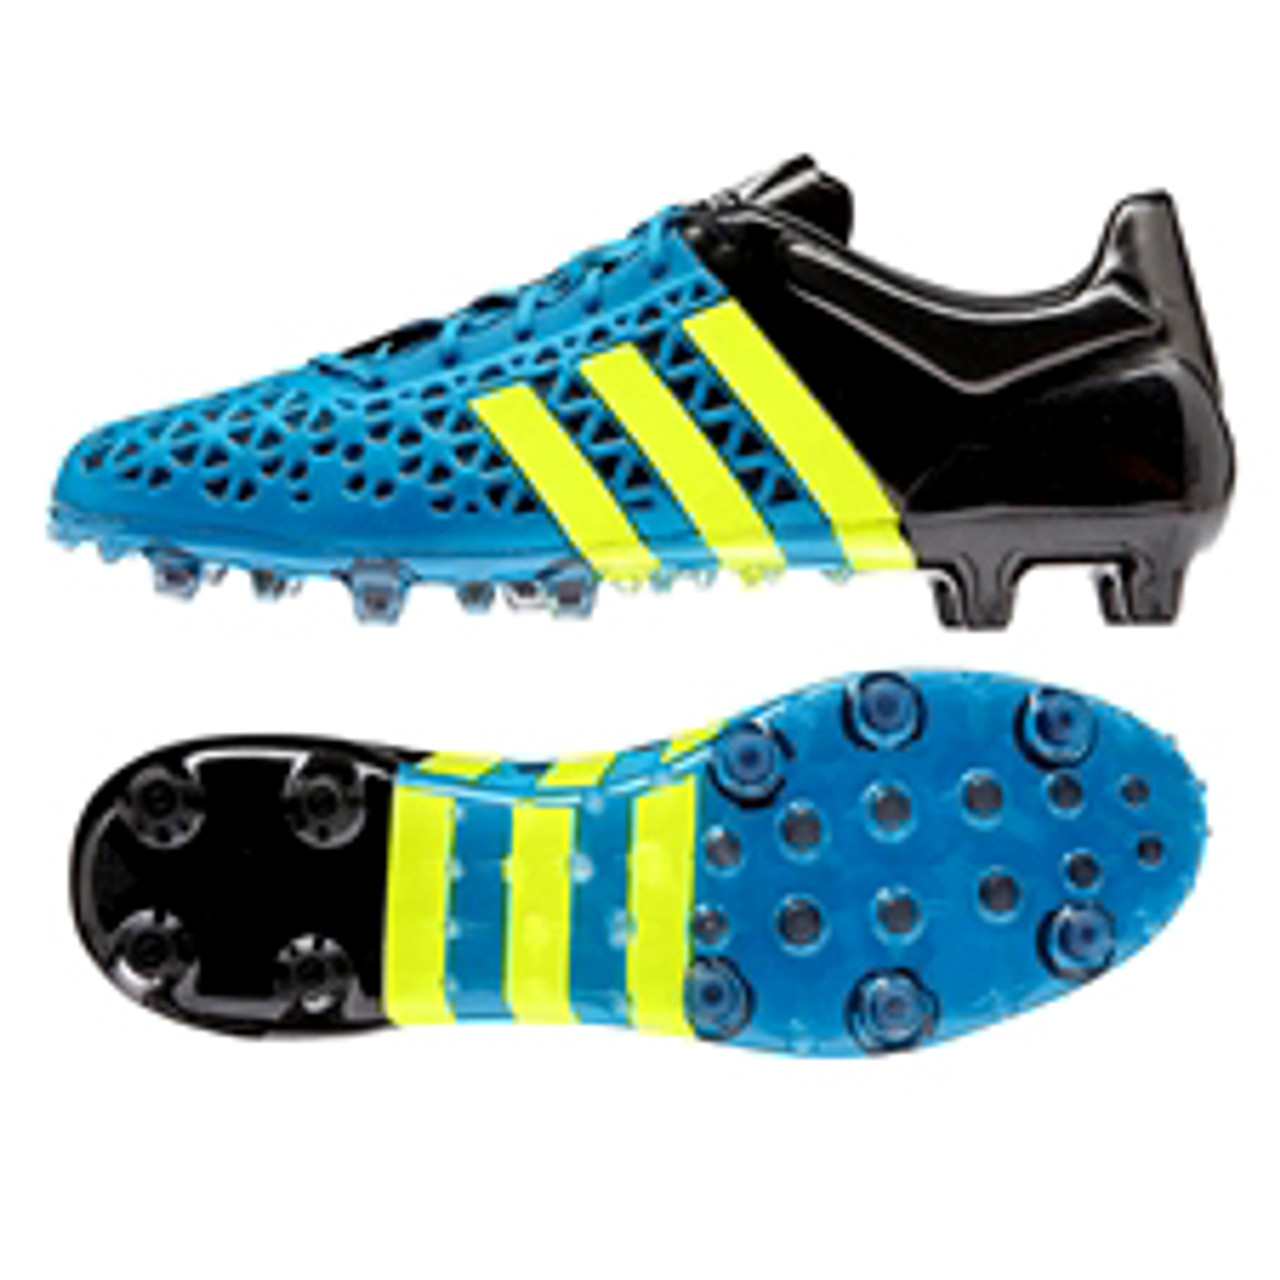 ADIDAS ACE 15.1 FGAG SOLAR BLUE firm ground soccer shoes